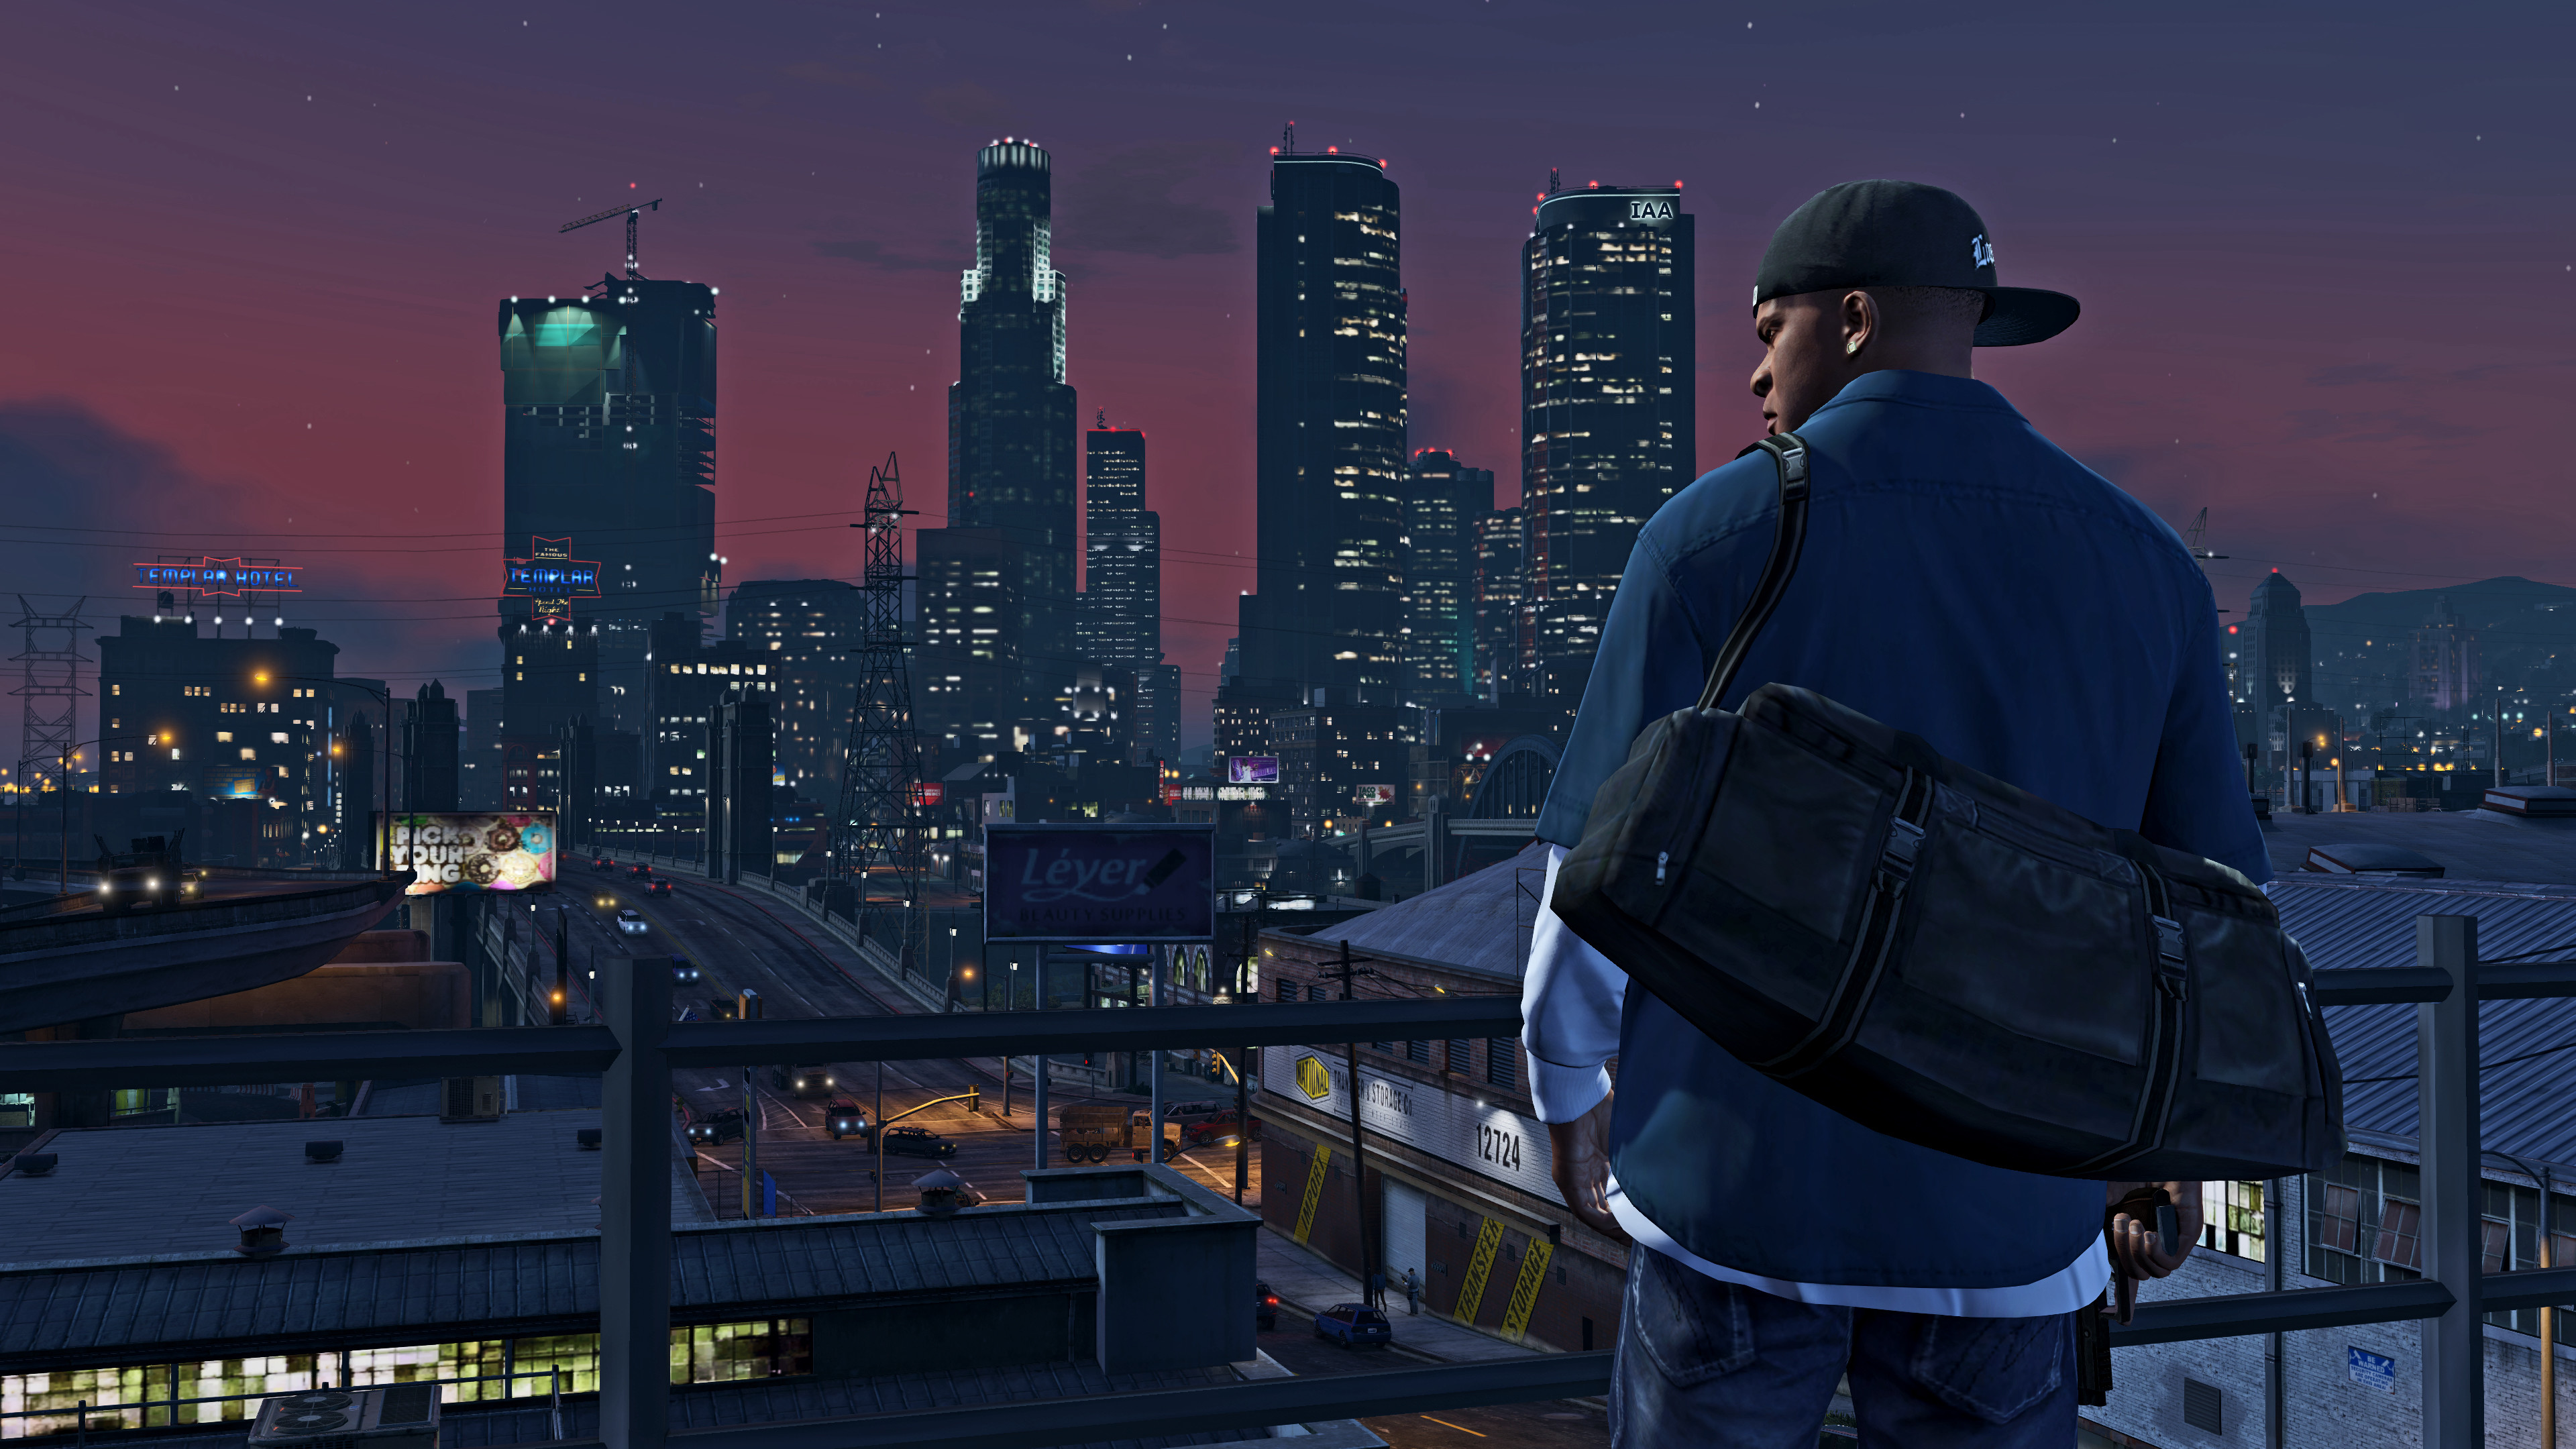 Gta V Wallpapers Hd Fondos De Pantalla